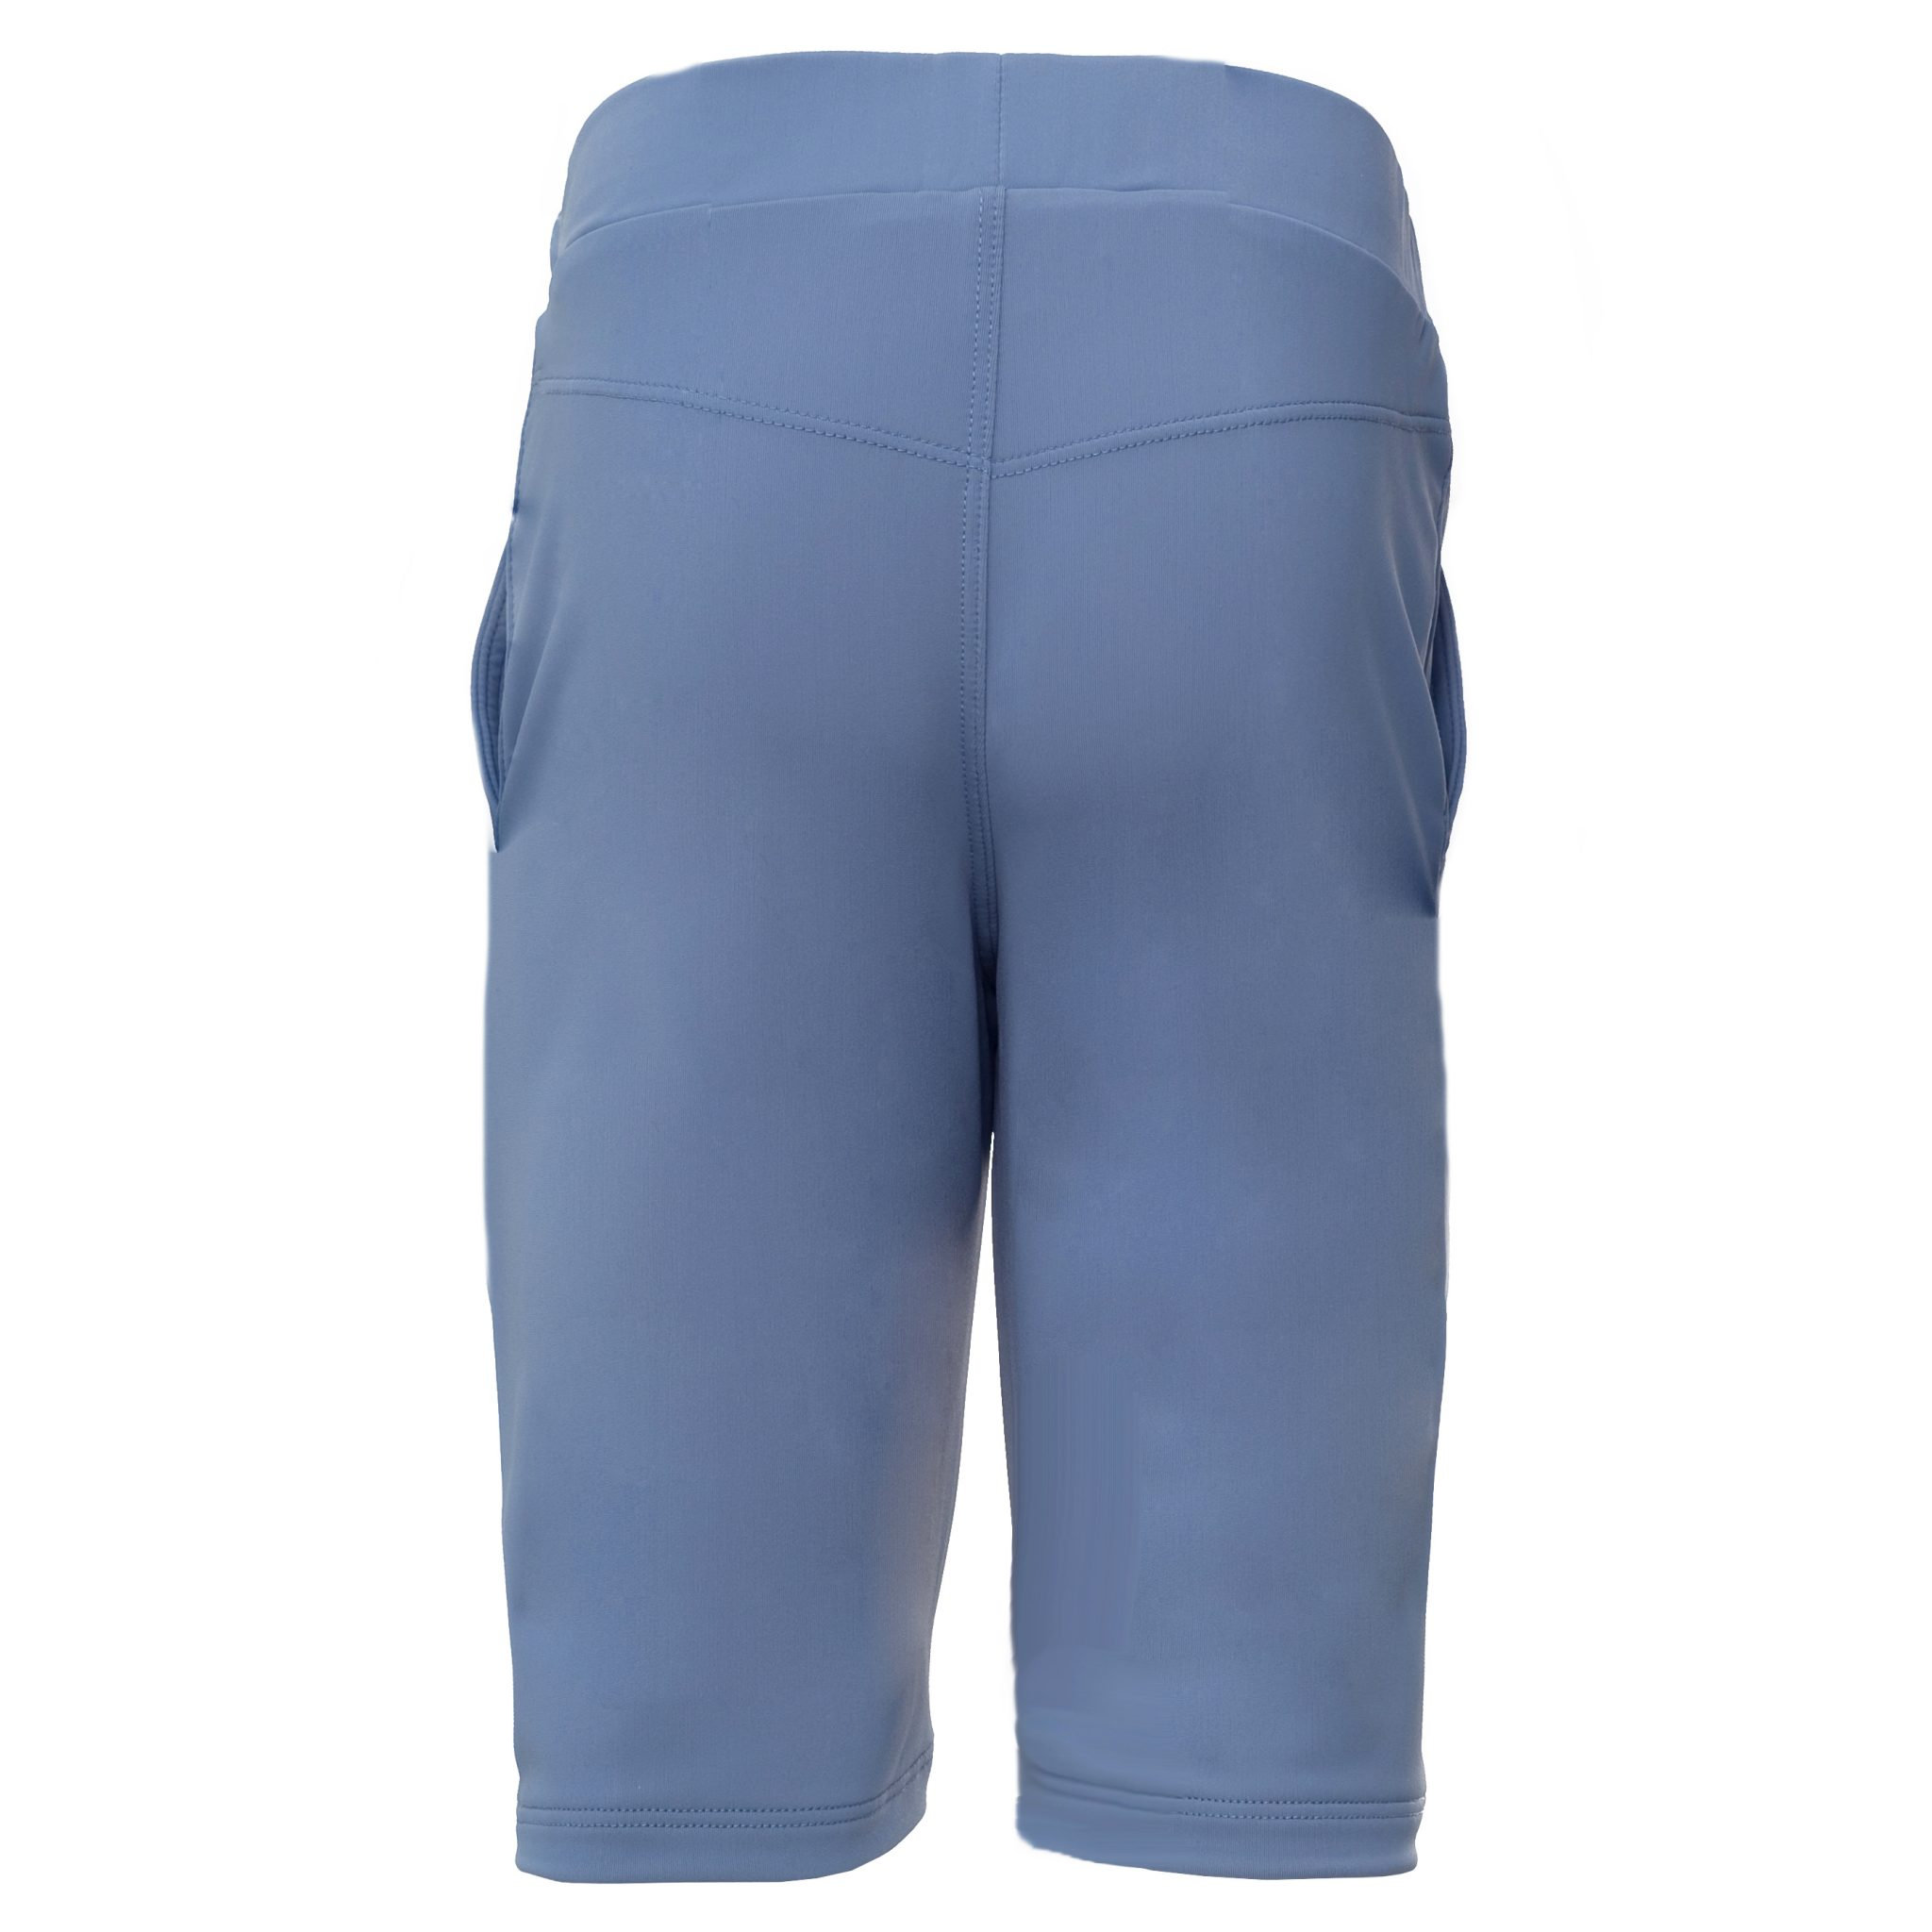 Petit Crabe petrol blue long swim shorts for children. UV sun protective clothing.